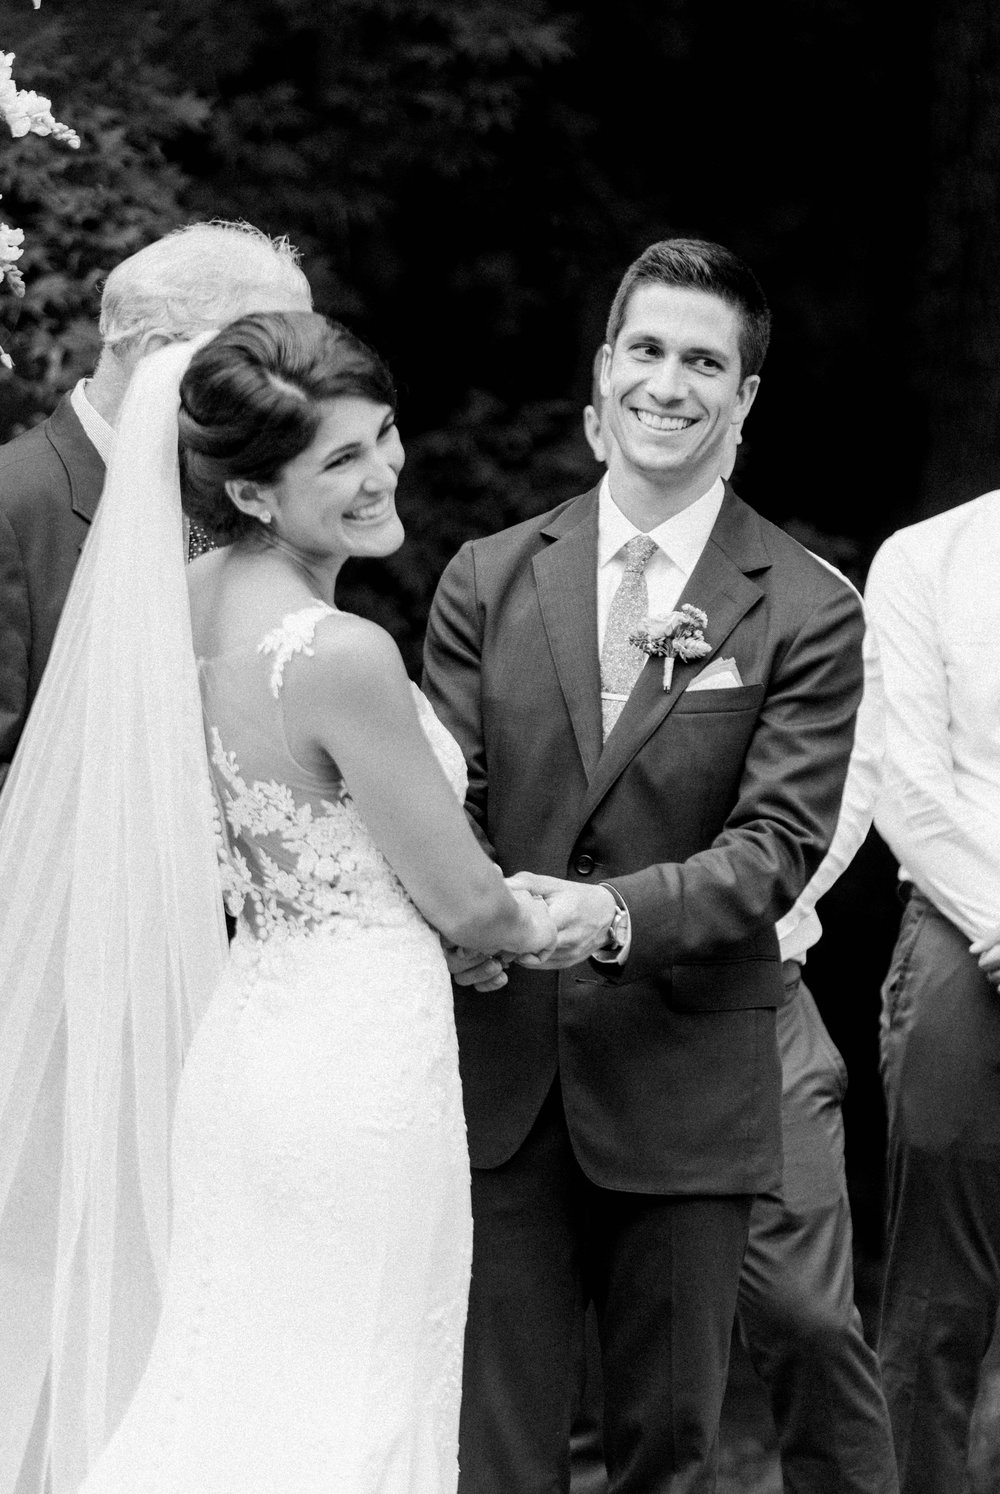 Williamsburgvawedding_backyardwedding_virginiaweddingphotographer_lynchburgweddingphotographer_PaulAliya 15.jpg